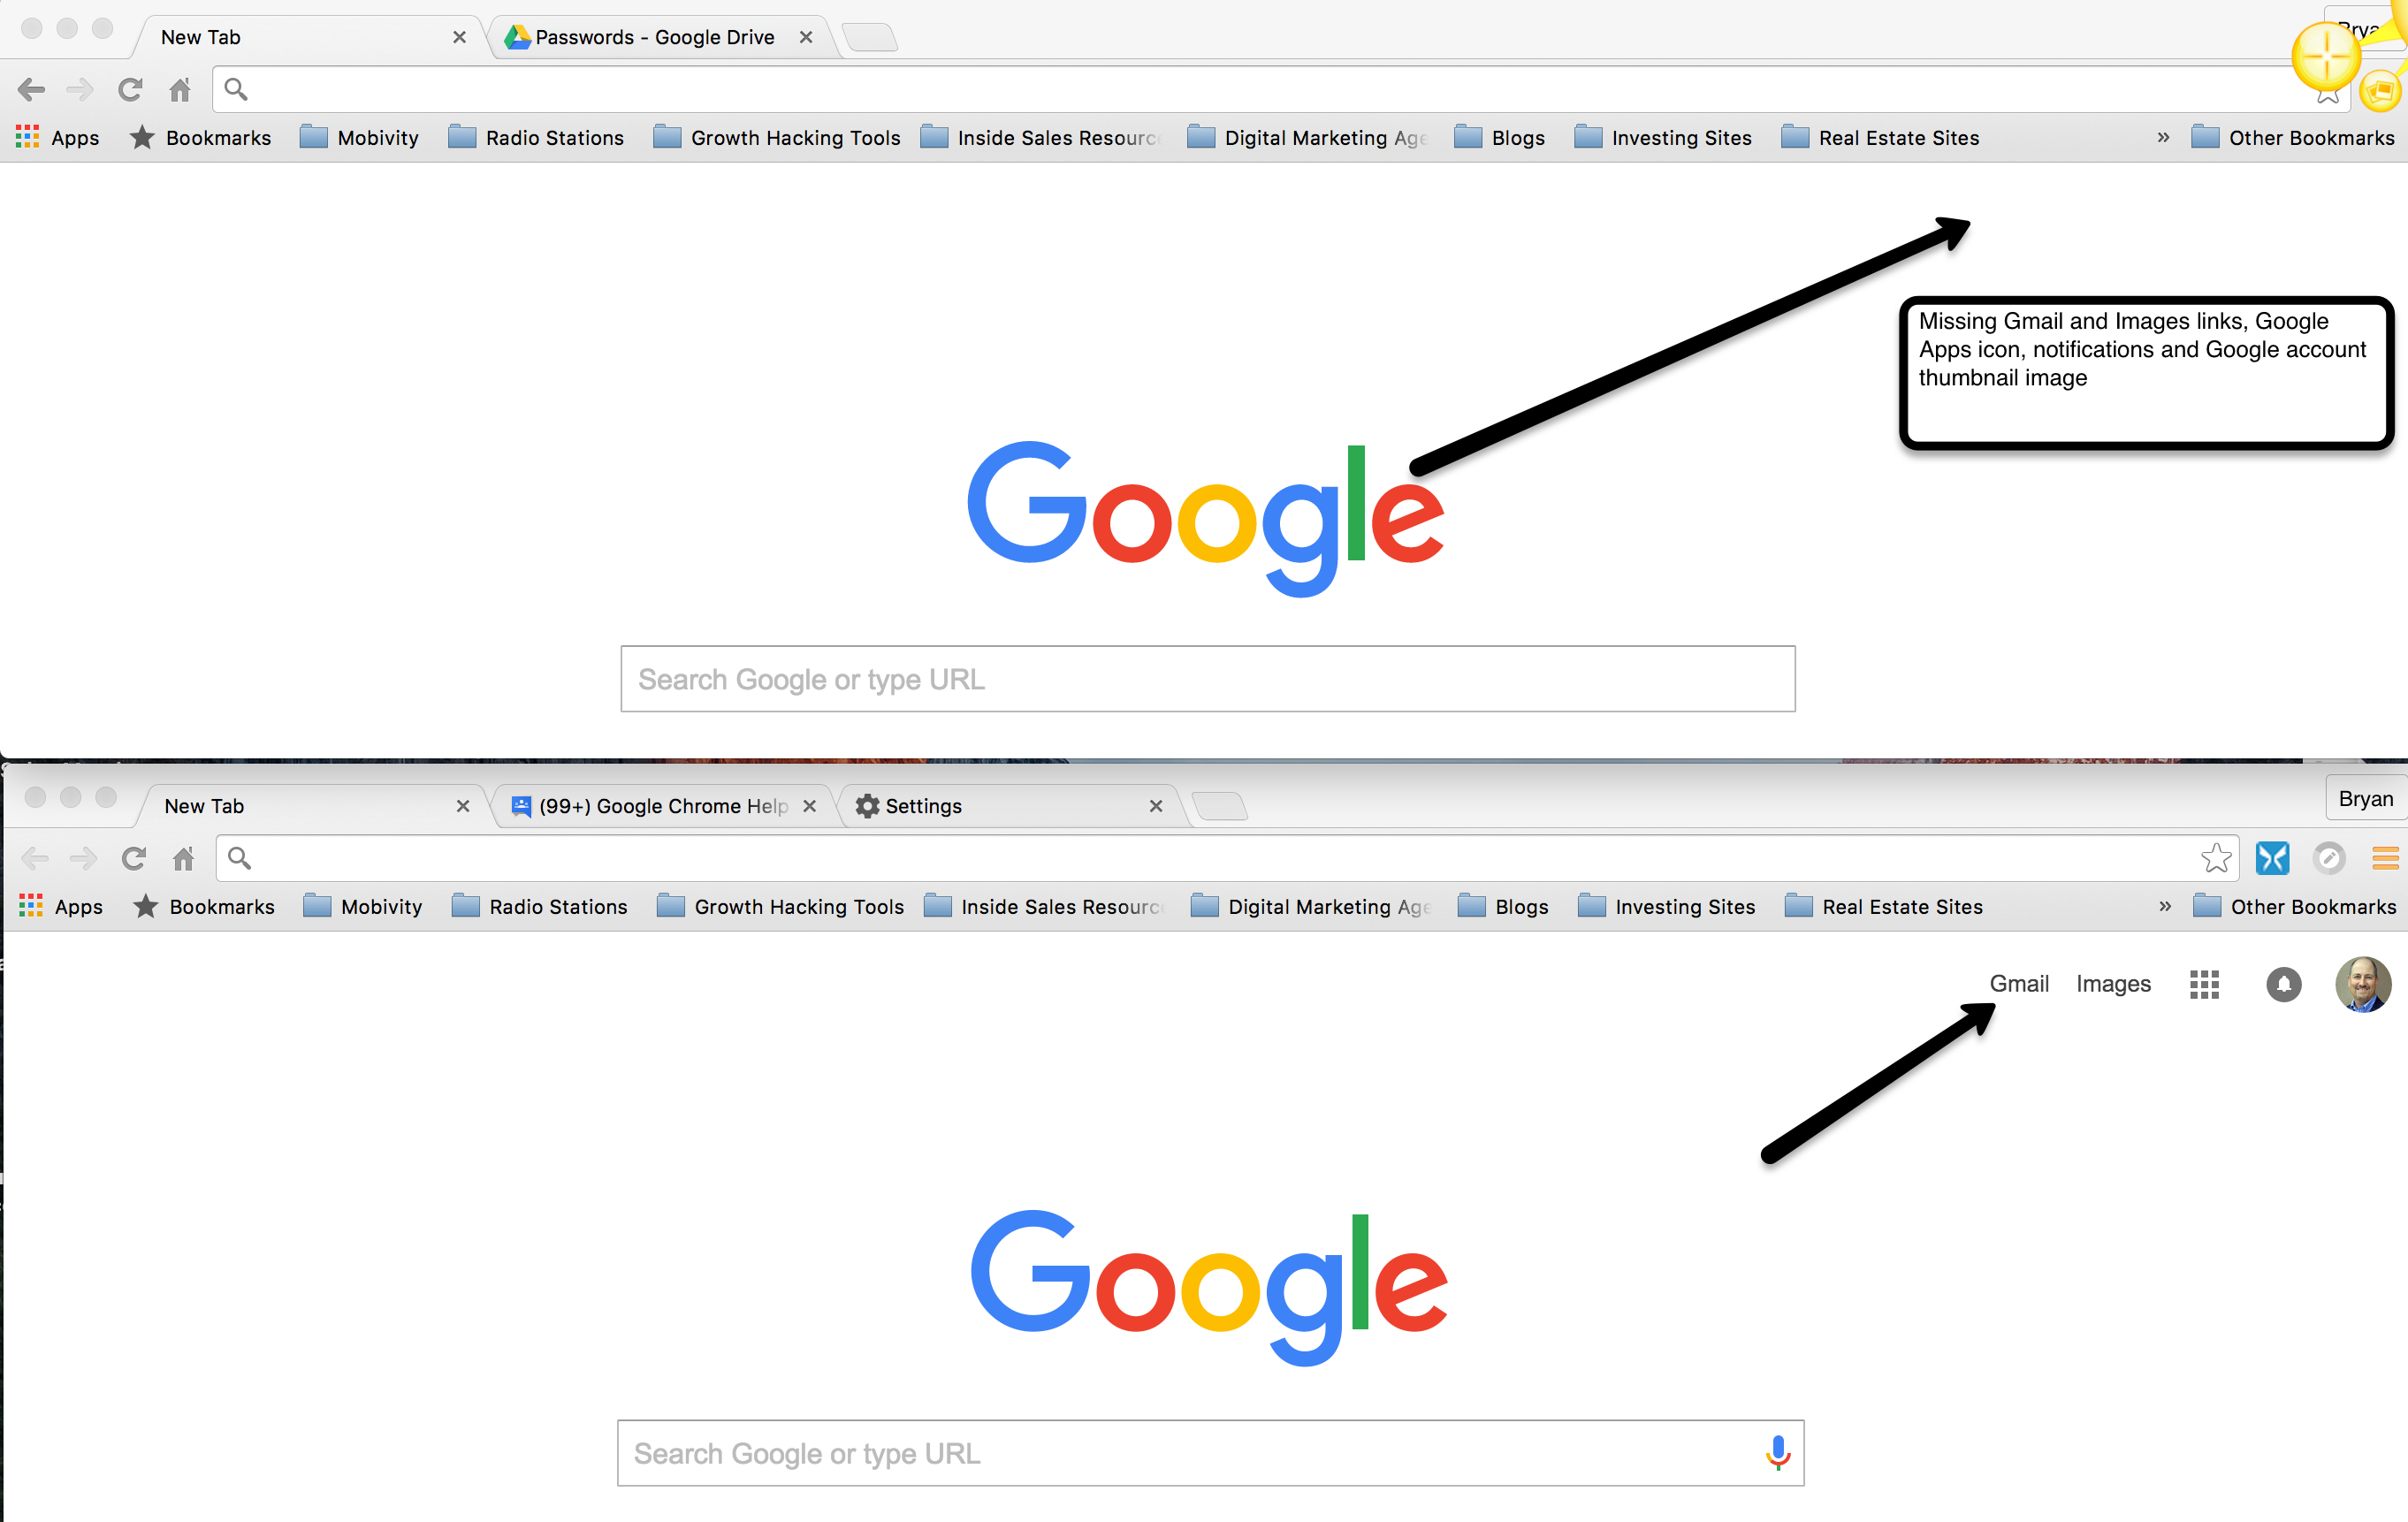 New tab page missing Gmail & Images links, Google Apps icon